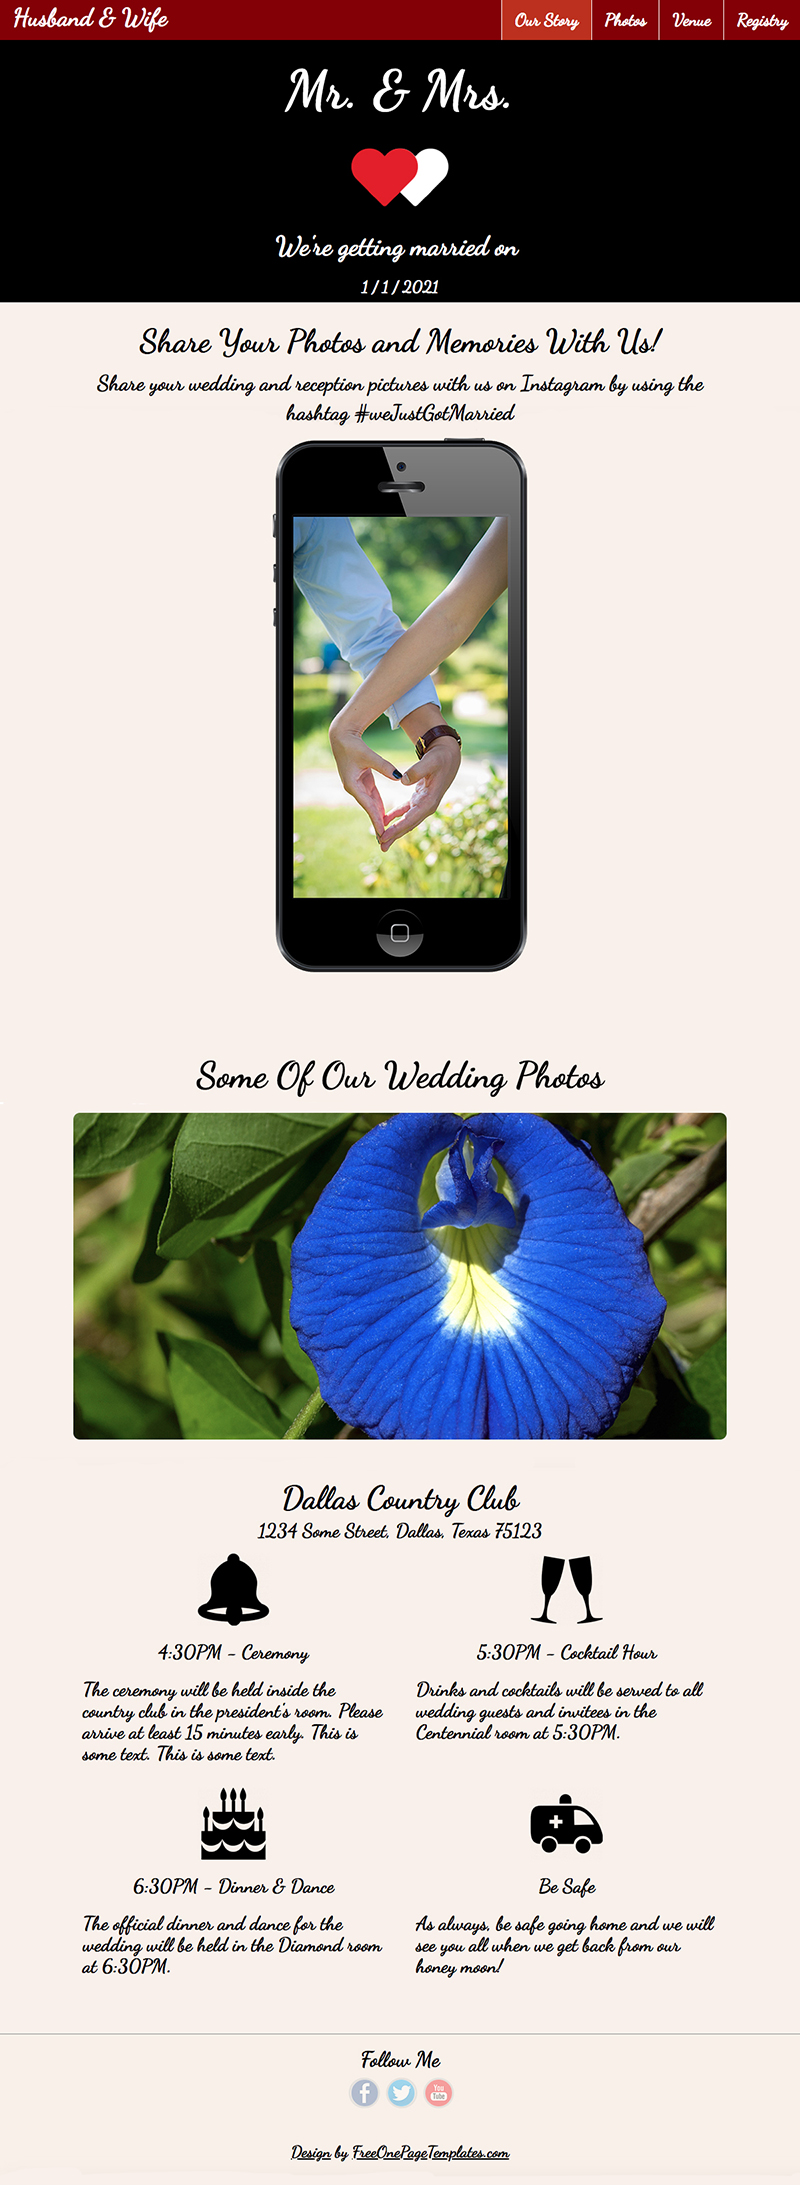 Free One Page Wedding Website Template - Mr. & Mrs.